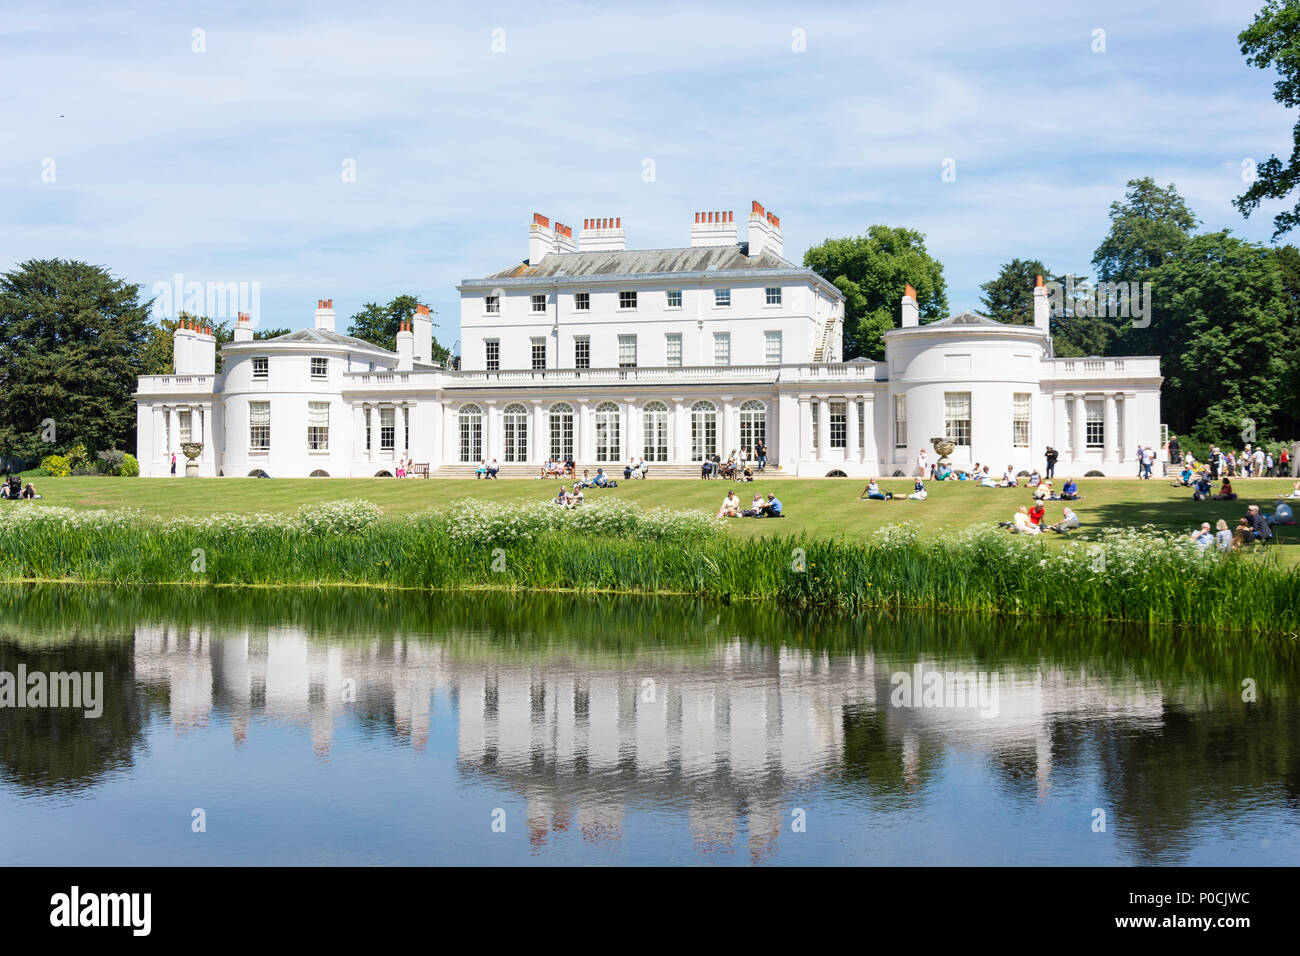 Frogmore House and Gardens across Frogmore Lake, Home Park, Windsor, Berkshire, England, United Kingdom - Stock Image